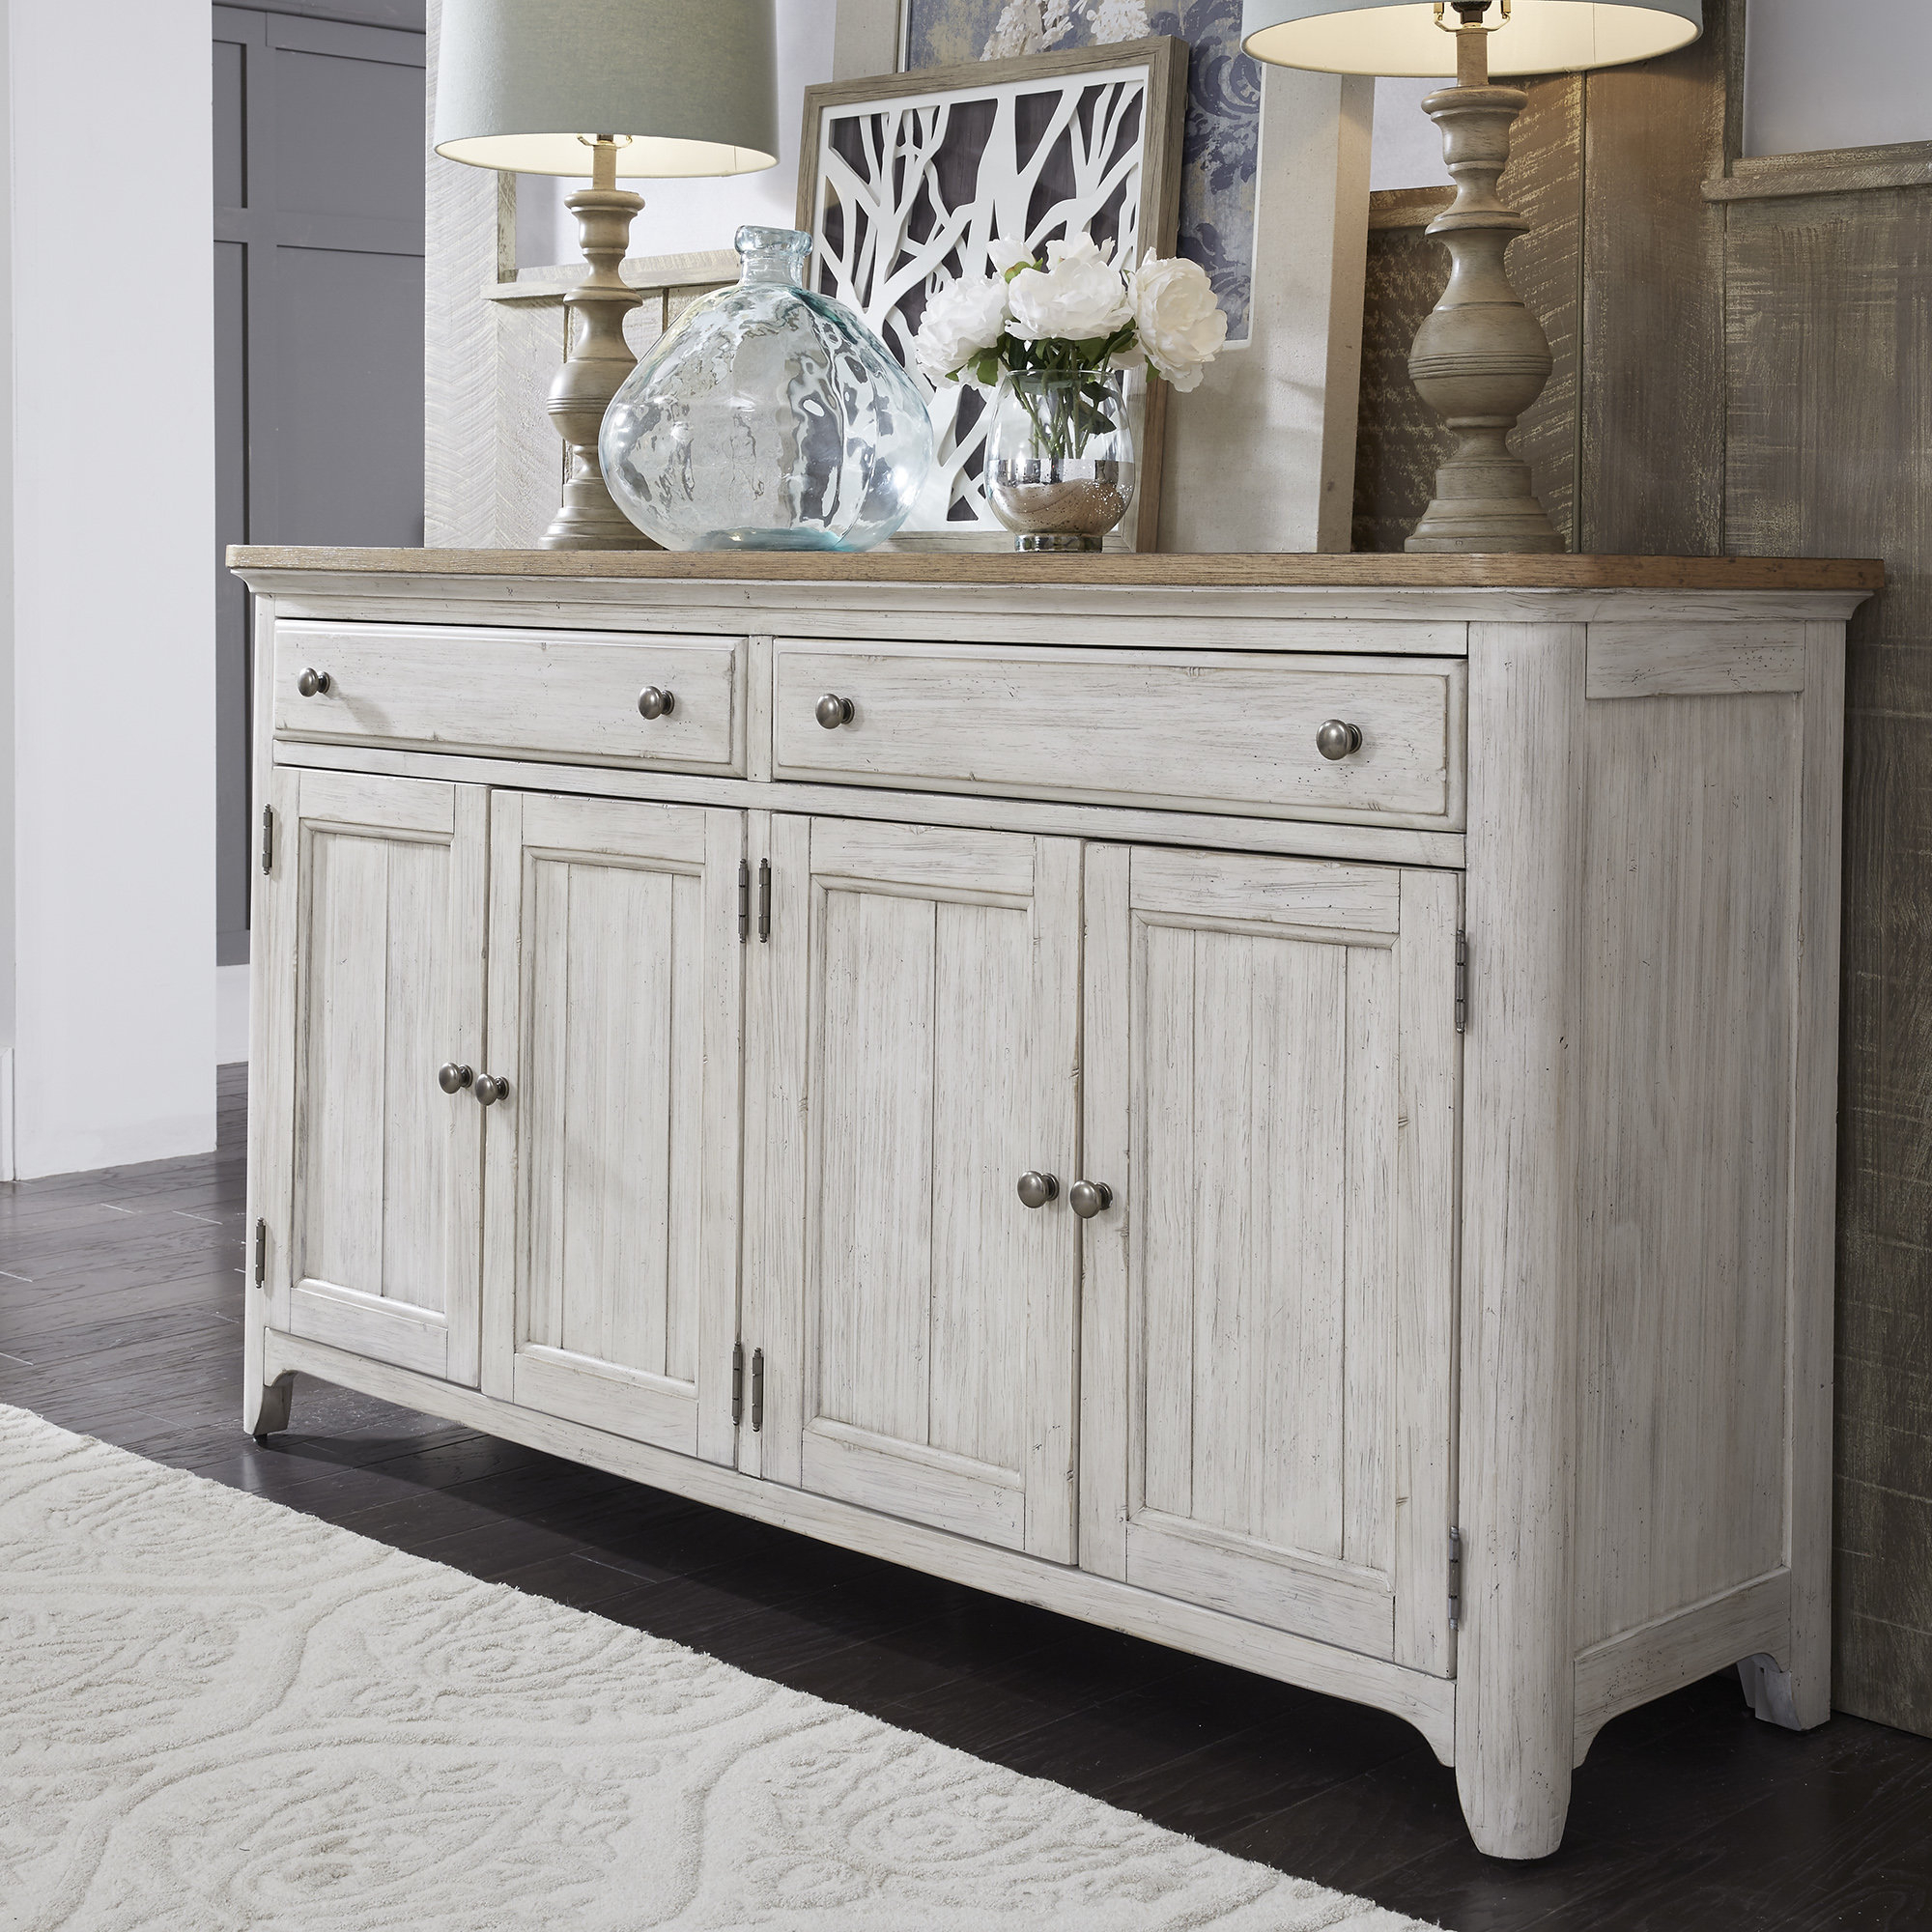 Konen Sideboard & Reviews | Birch Lane With Regard To Courtdale Sideboards (Gallery 14 of 20)